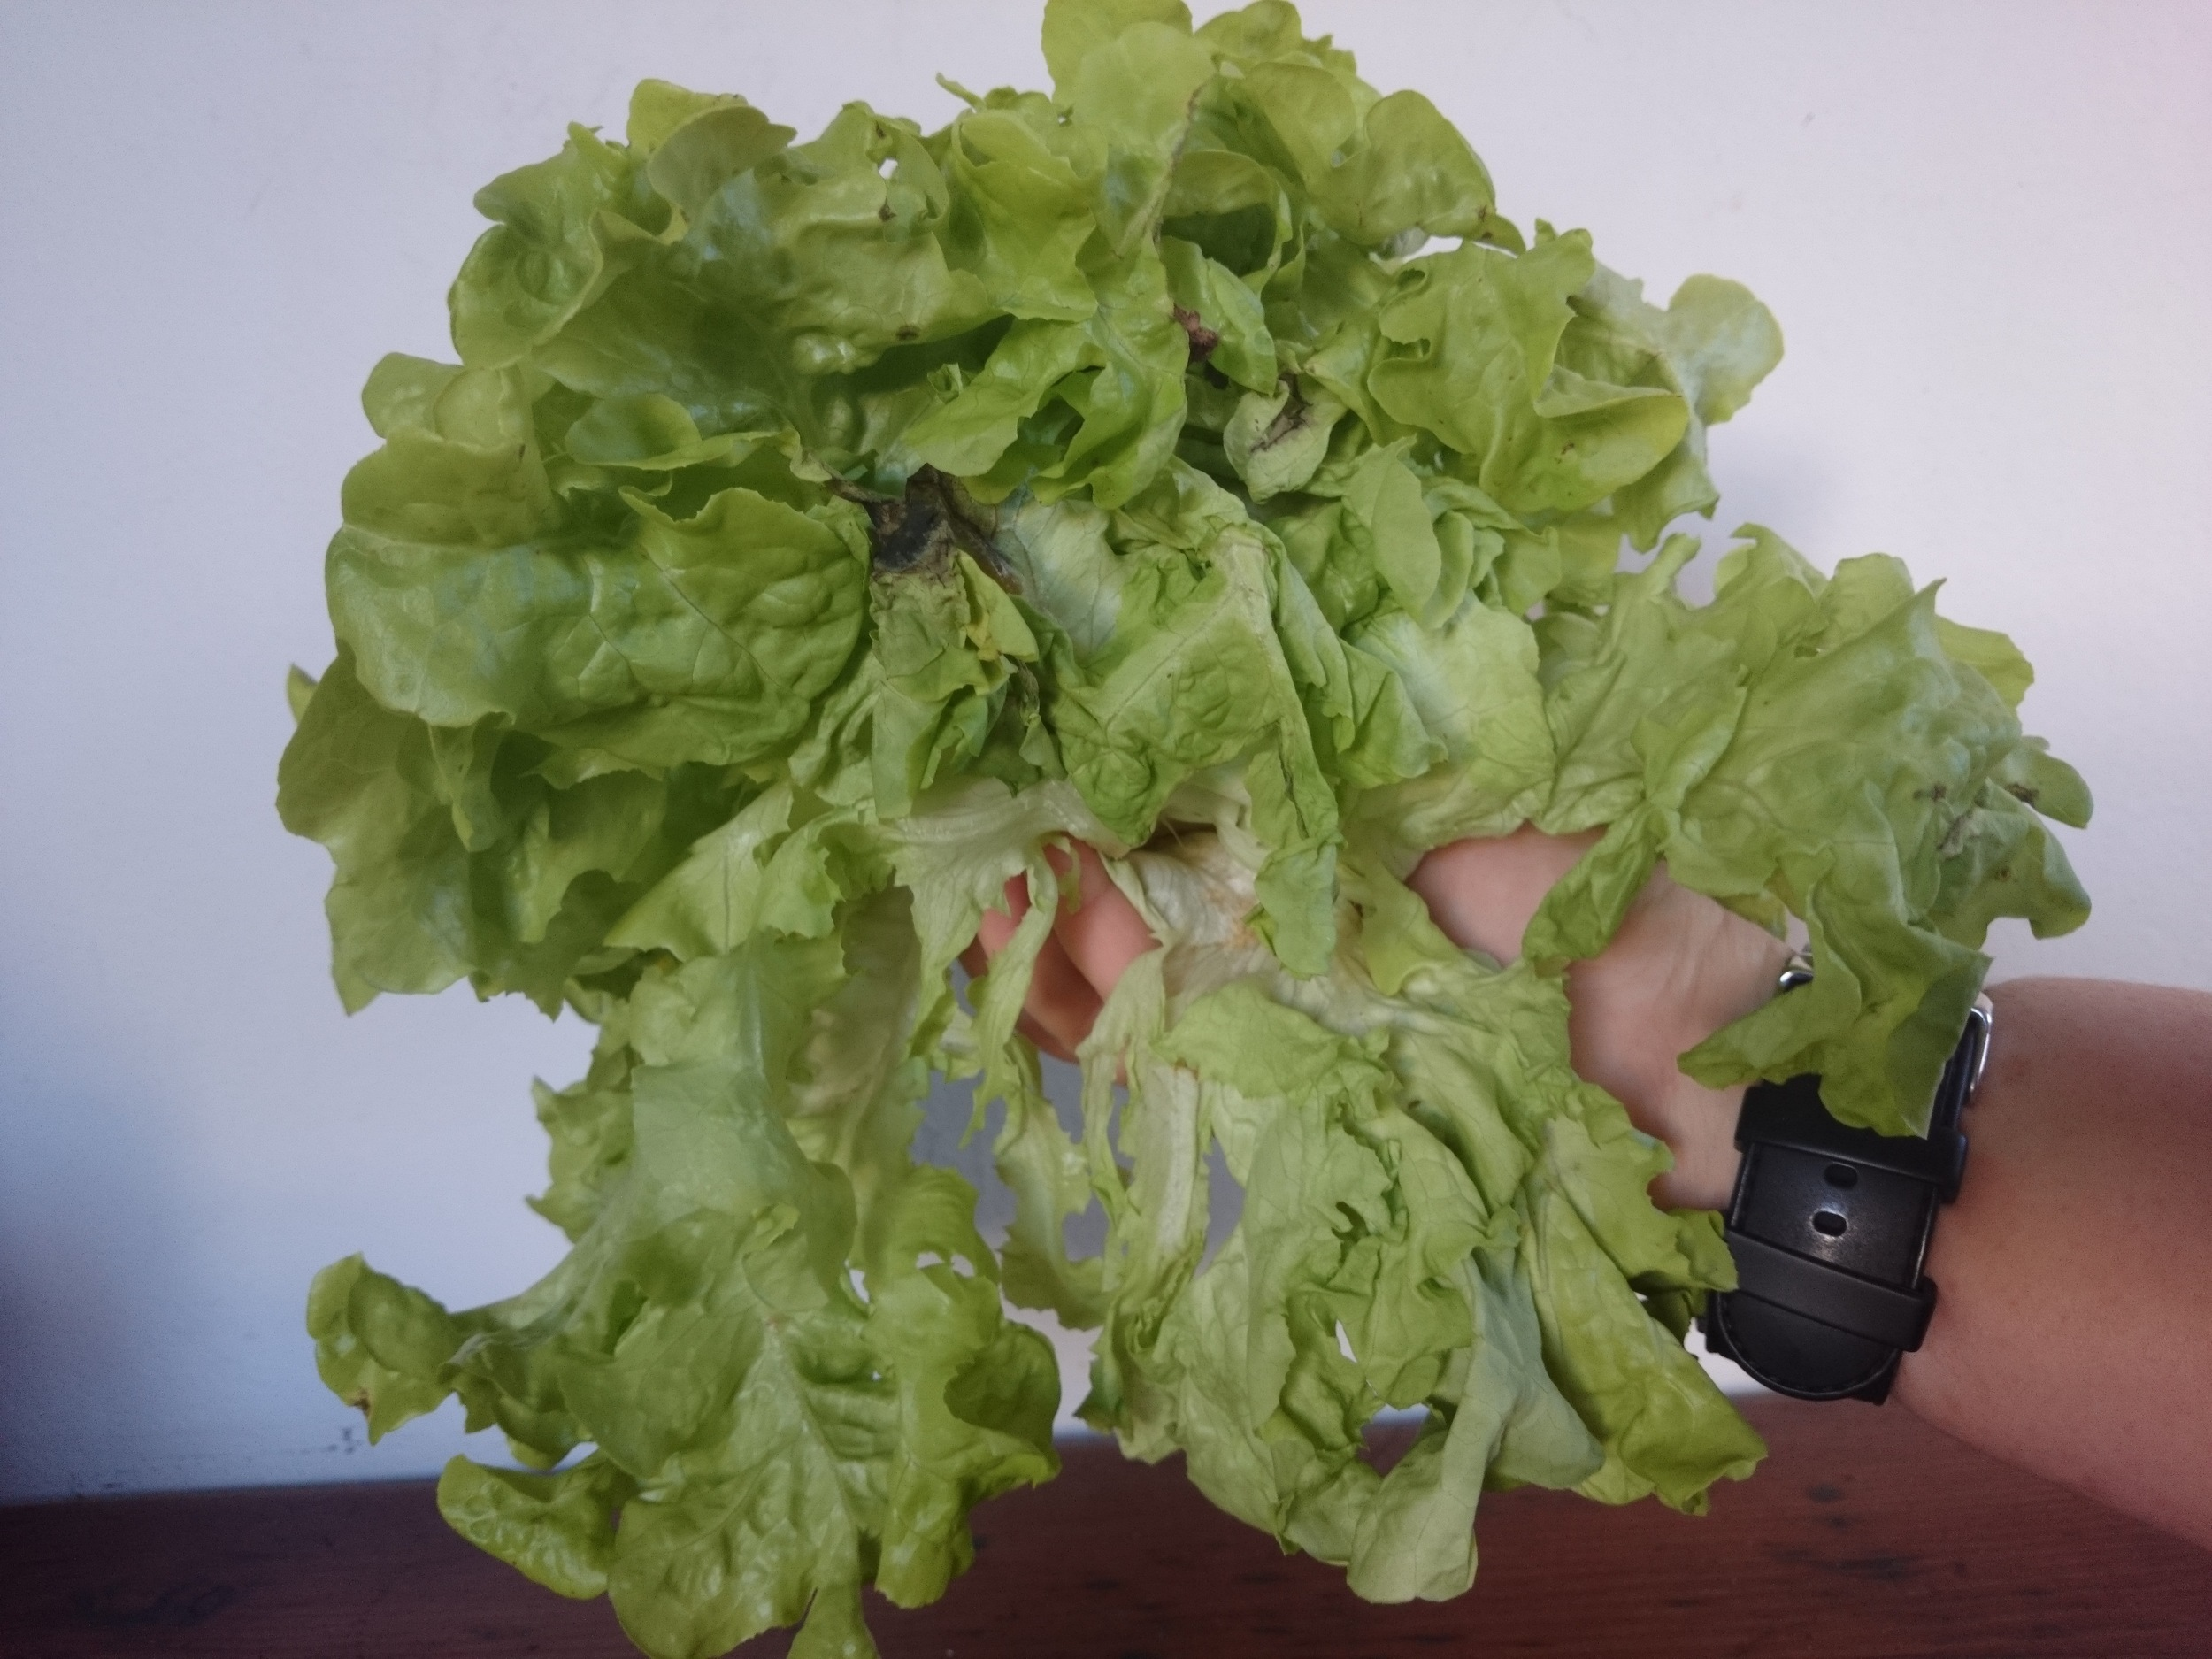 This lettuce needs reviving.